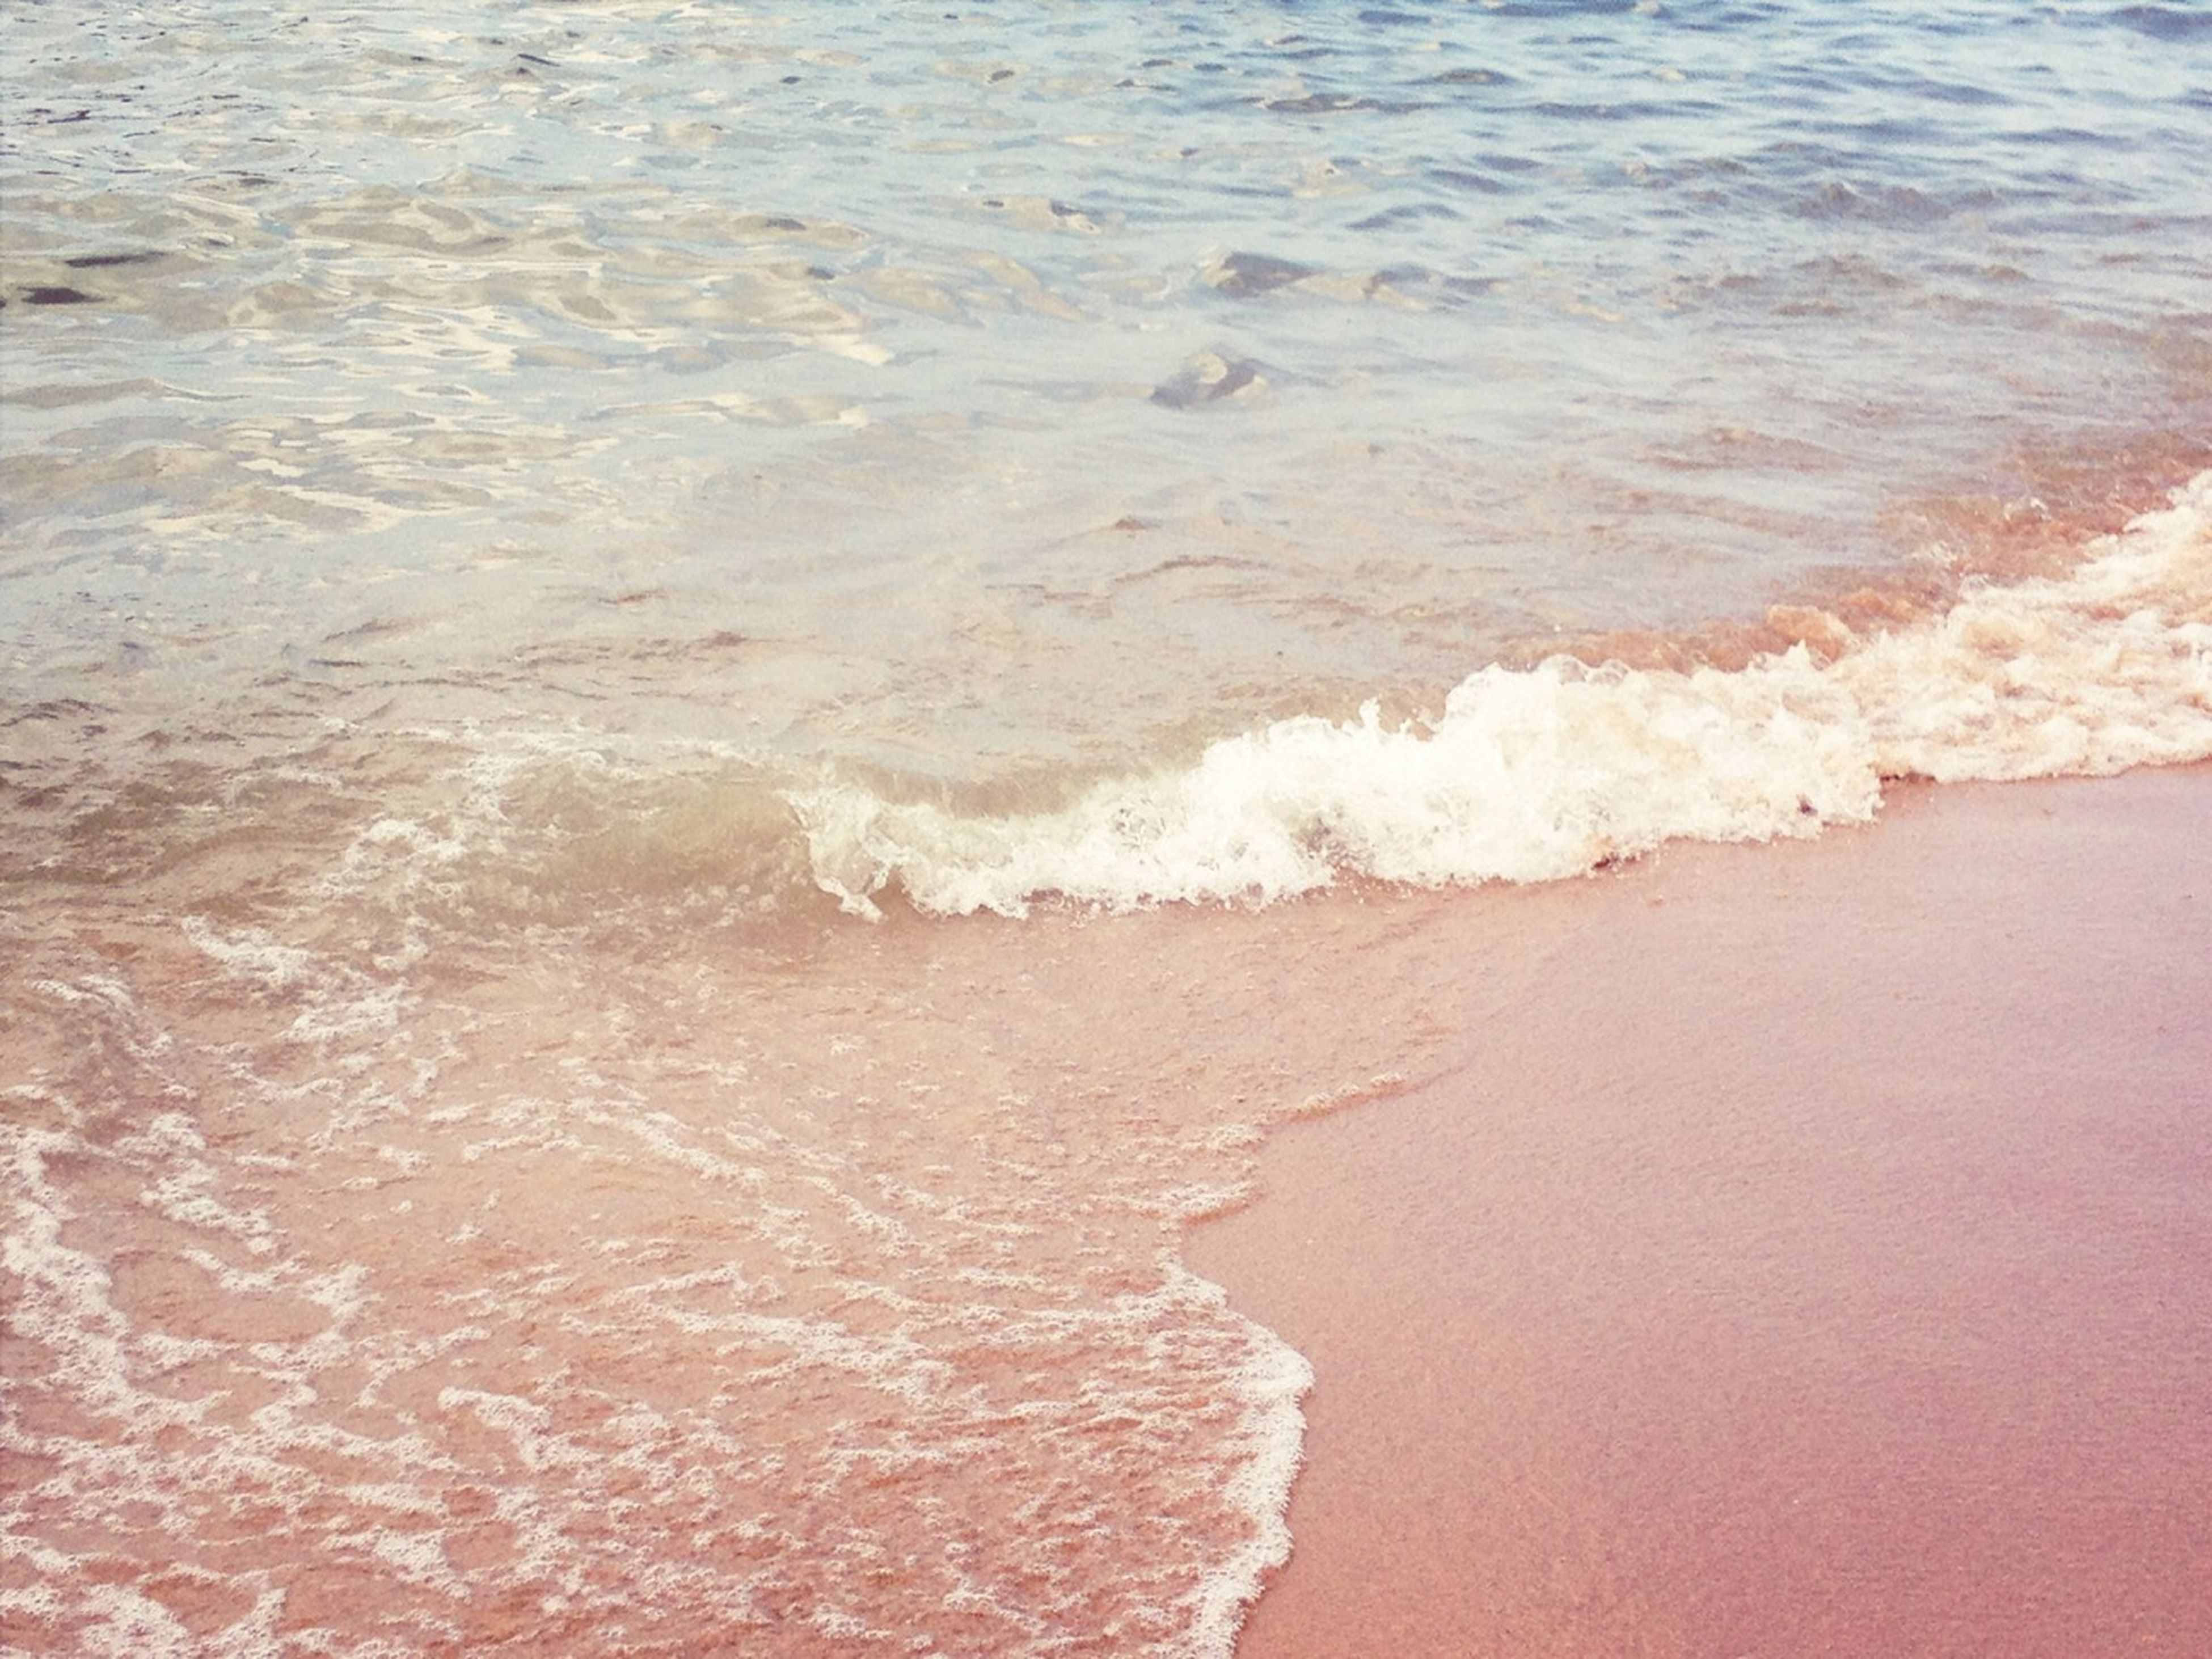 beach, sea, water, sand, shore, surf, wave, high angle view, nature, beauty in nature, horizon over water, motion, tranquility, scenics, coastline, outdoors, day, no people, tranquil scene, footprint